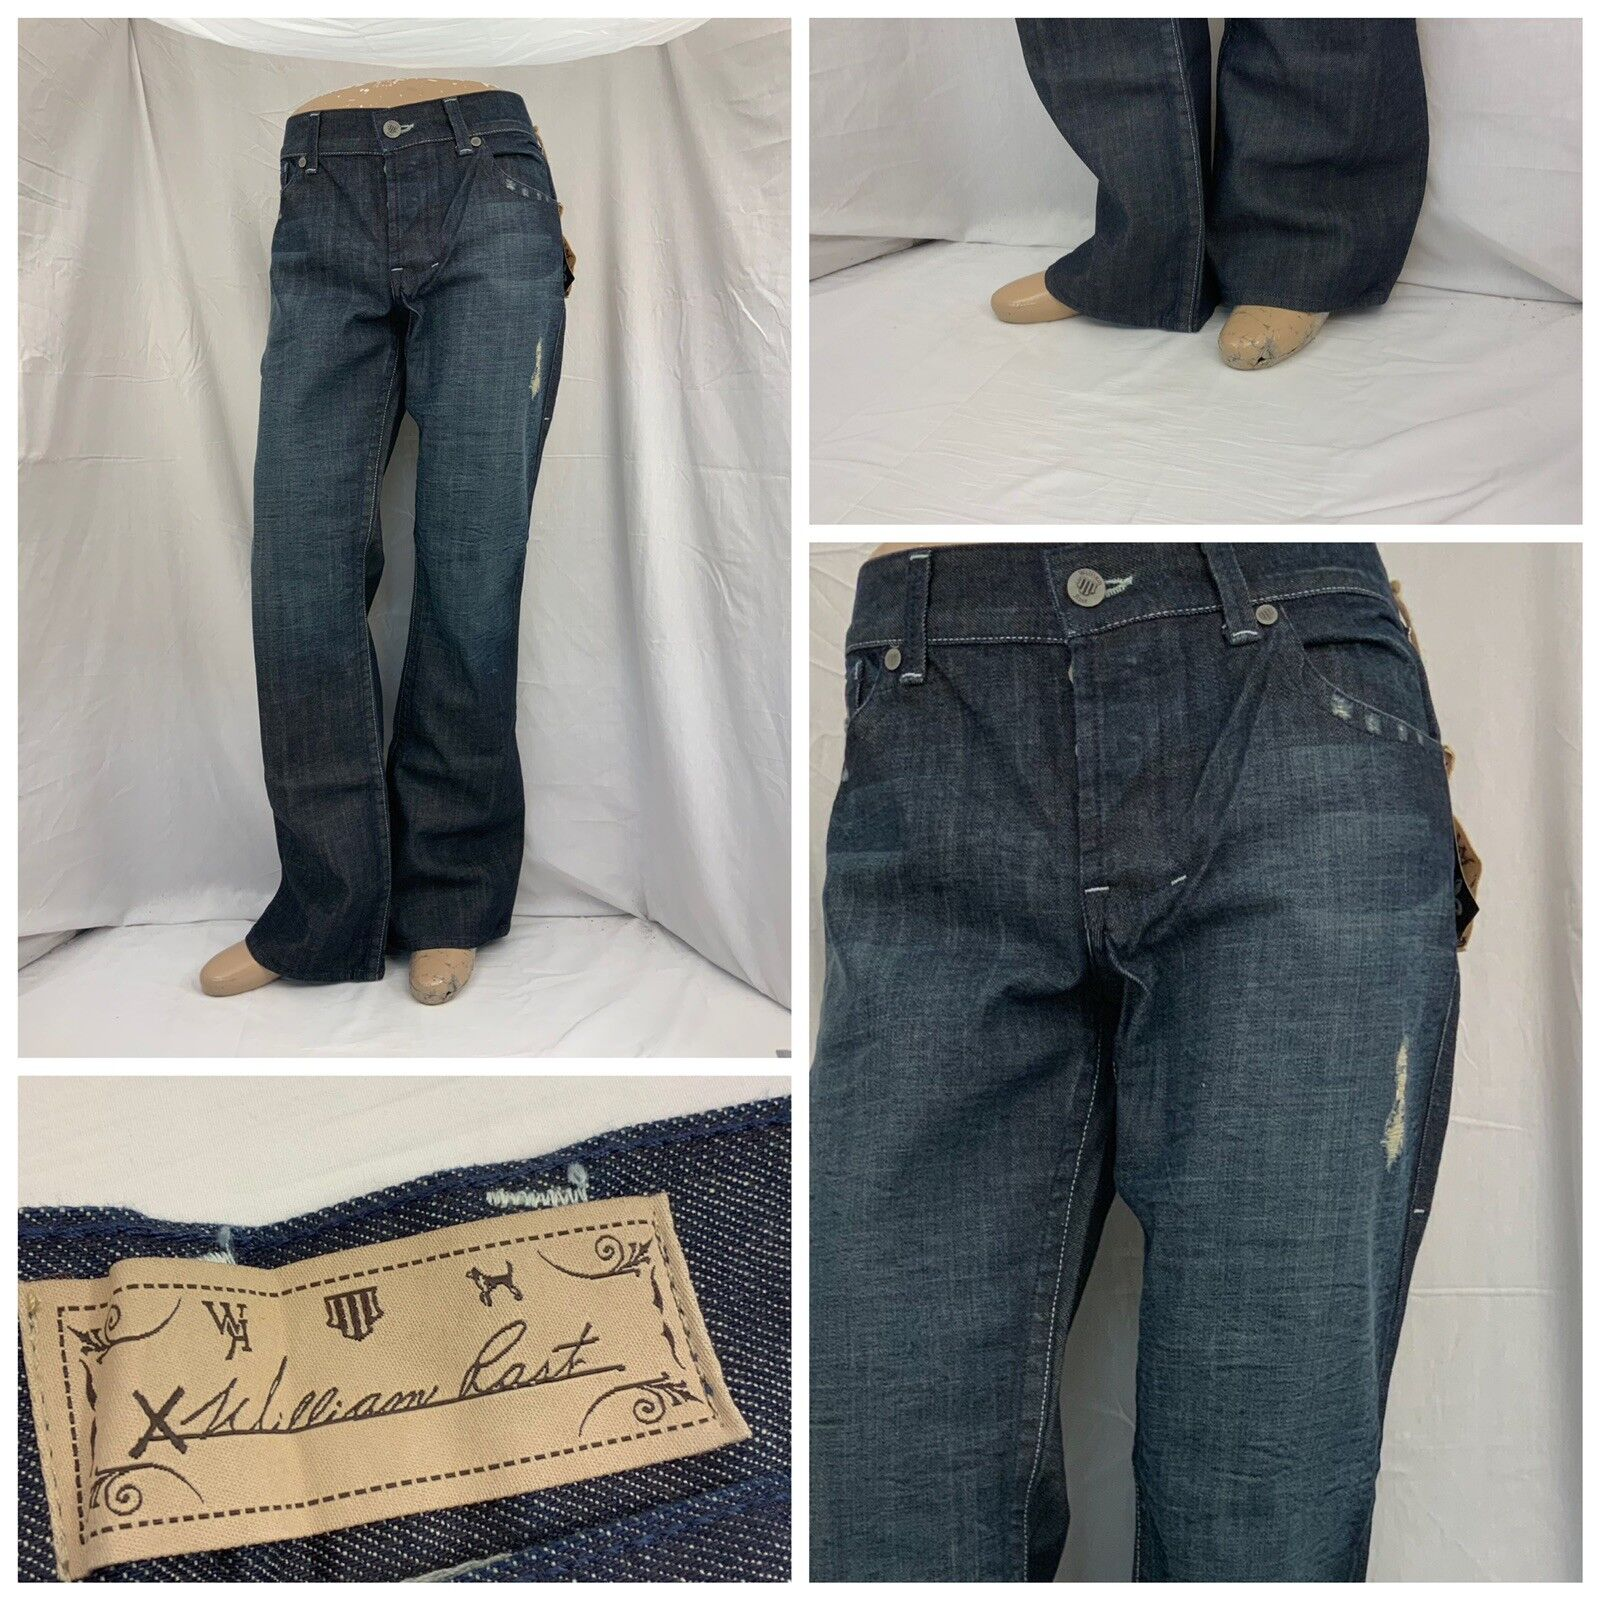 William Rast Jeans 36x34 bluee Dark Wash Cotton Poly Made In USA NWT YGI Y8-262CG